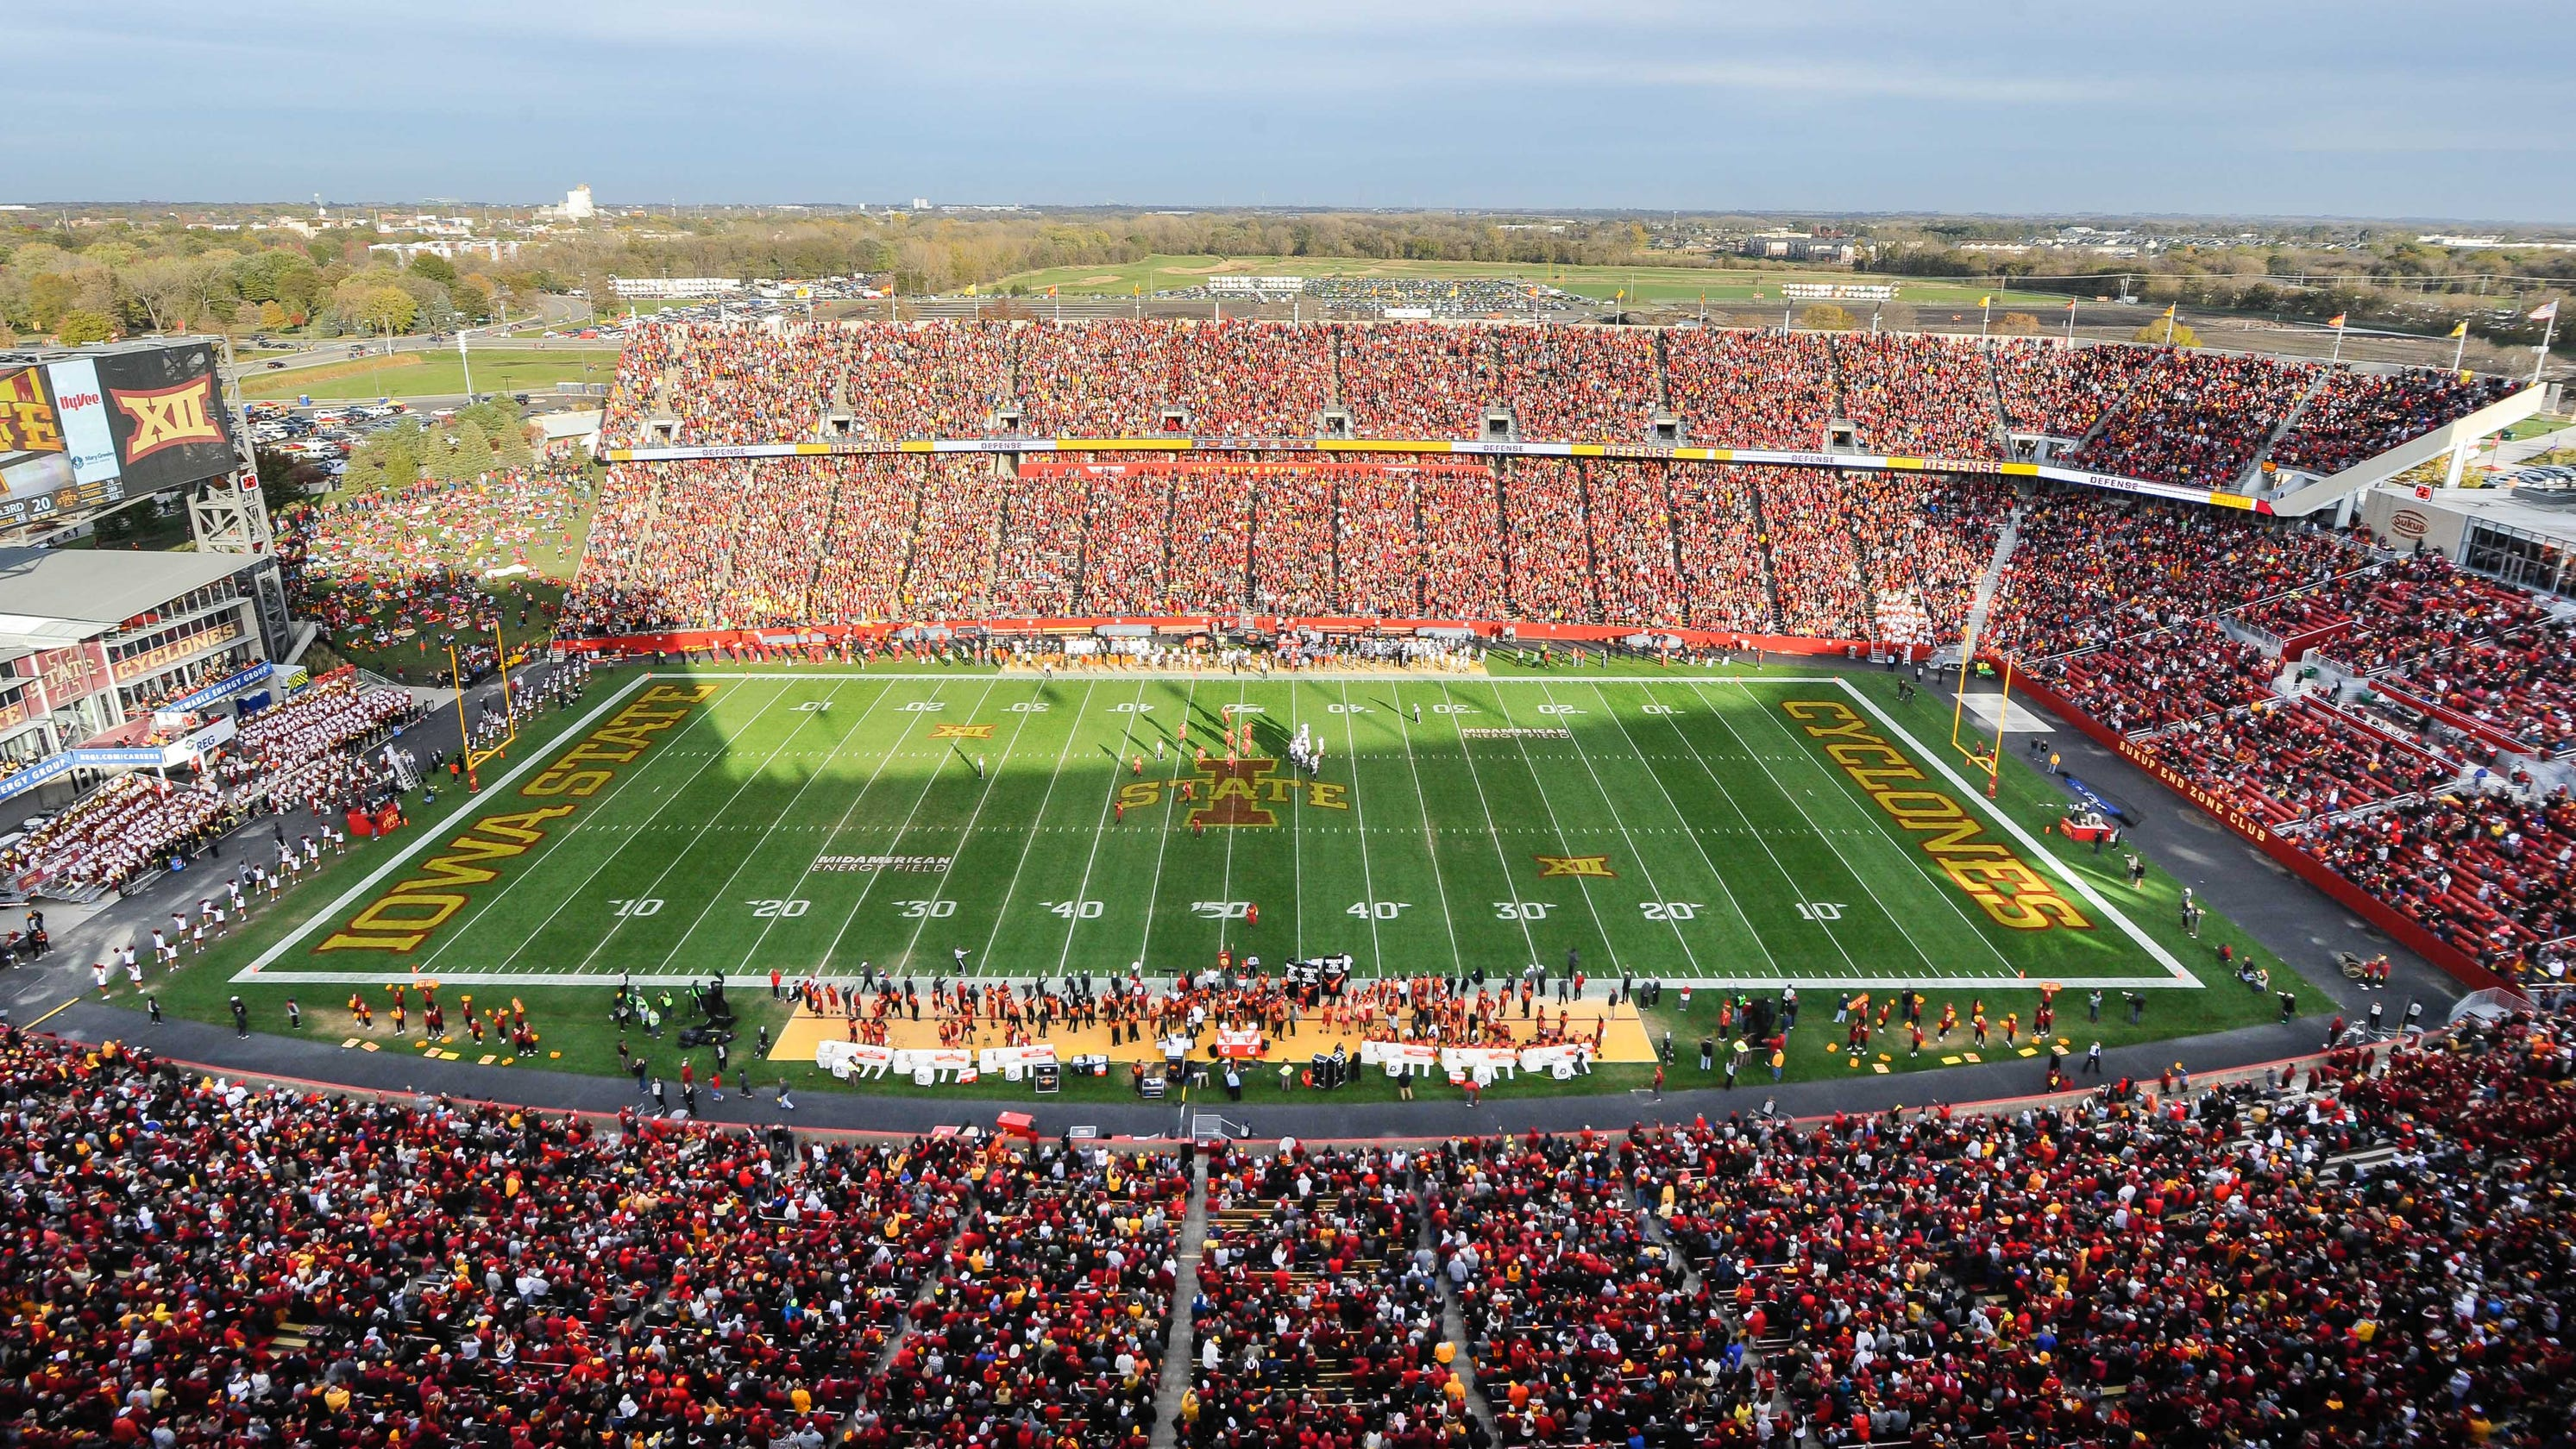 Iowa State planning to host 25,000 football fans as COVID-19 surges